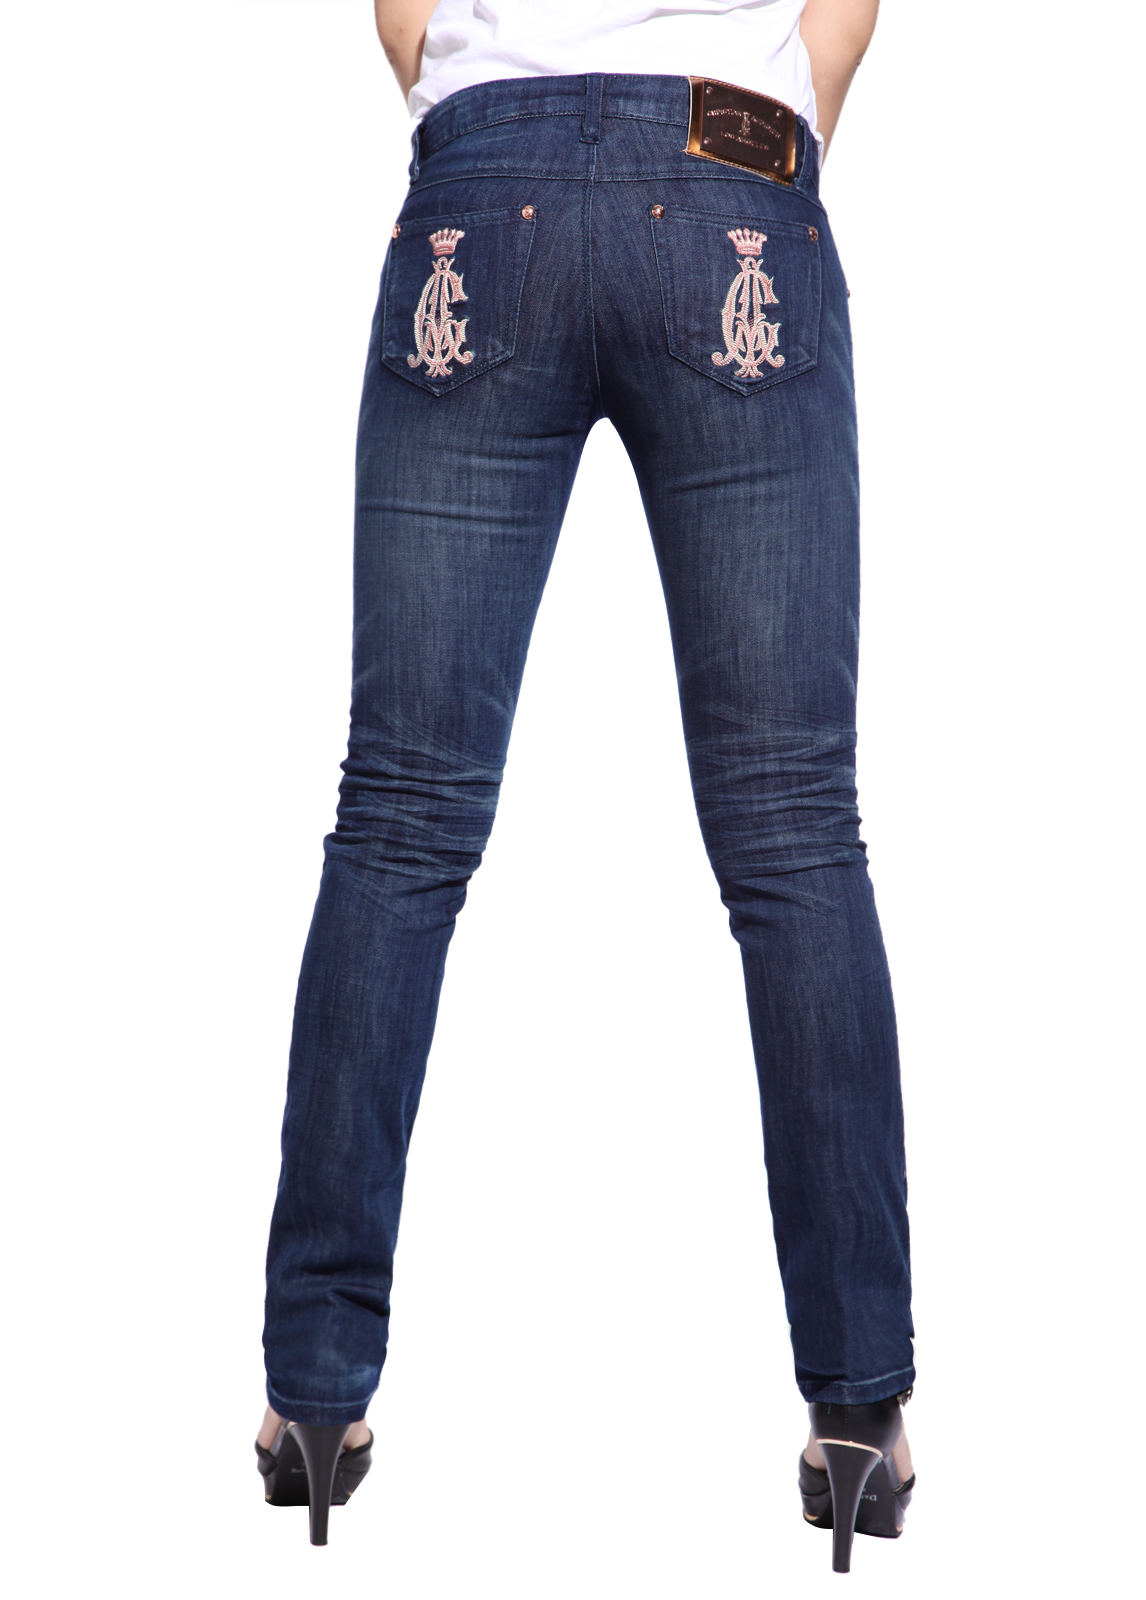 Extra long length jeans for tall women. We provide tall ladies, tall girls with extra long length pants, dress pants, maxi dresses, dresses, pyjamas, suits and long fashionable womens clothing. Long inseam bootlegs, flares, straight legs, waist and hipsters.